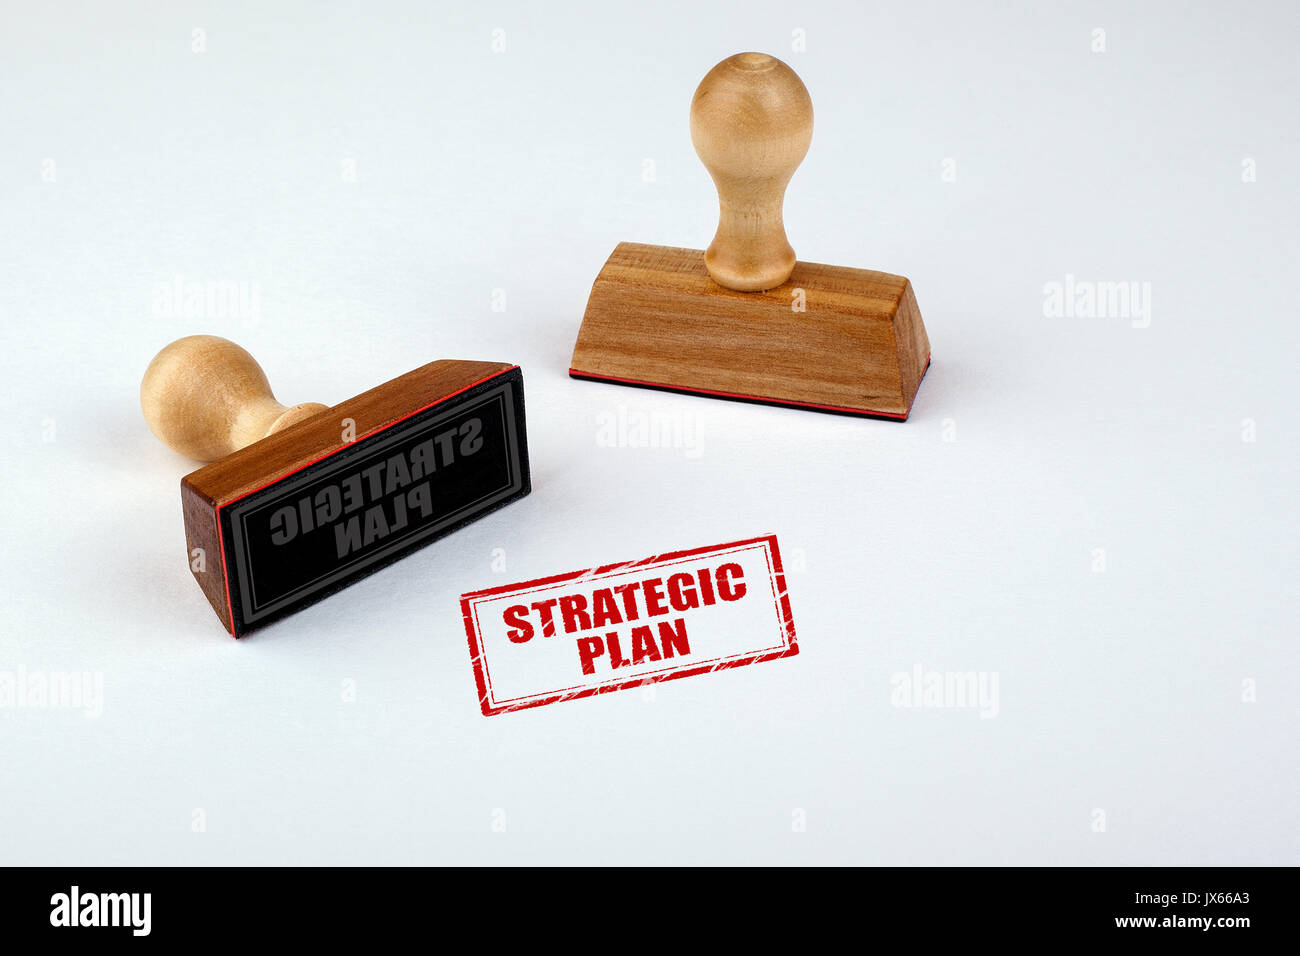 Strategic Plan. Rubber Stamper with Wooden handle Isolated on White Background. - Stock Image